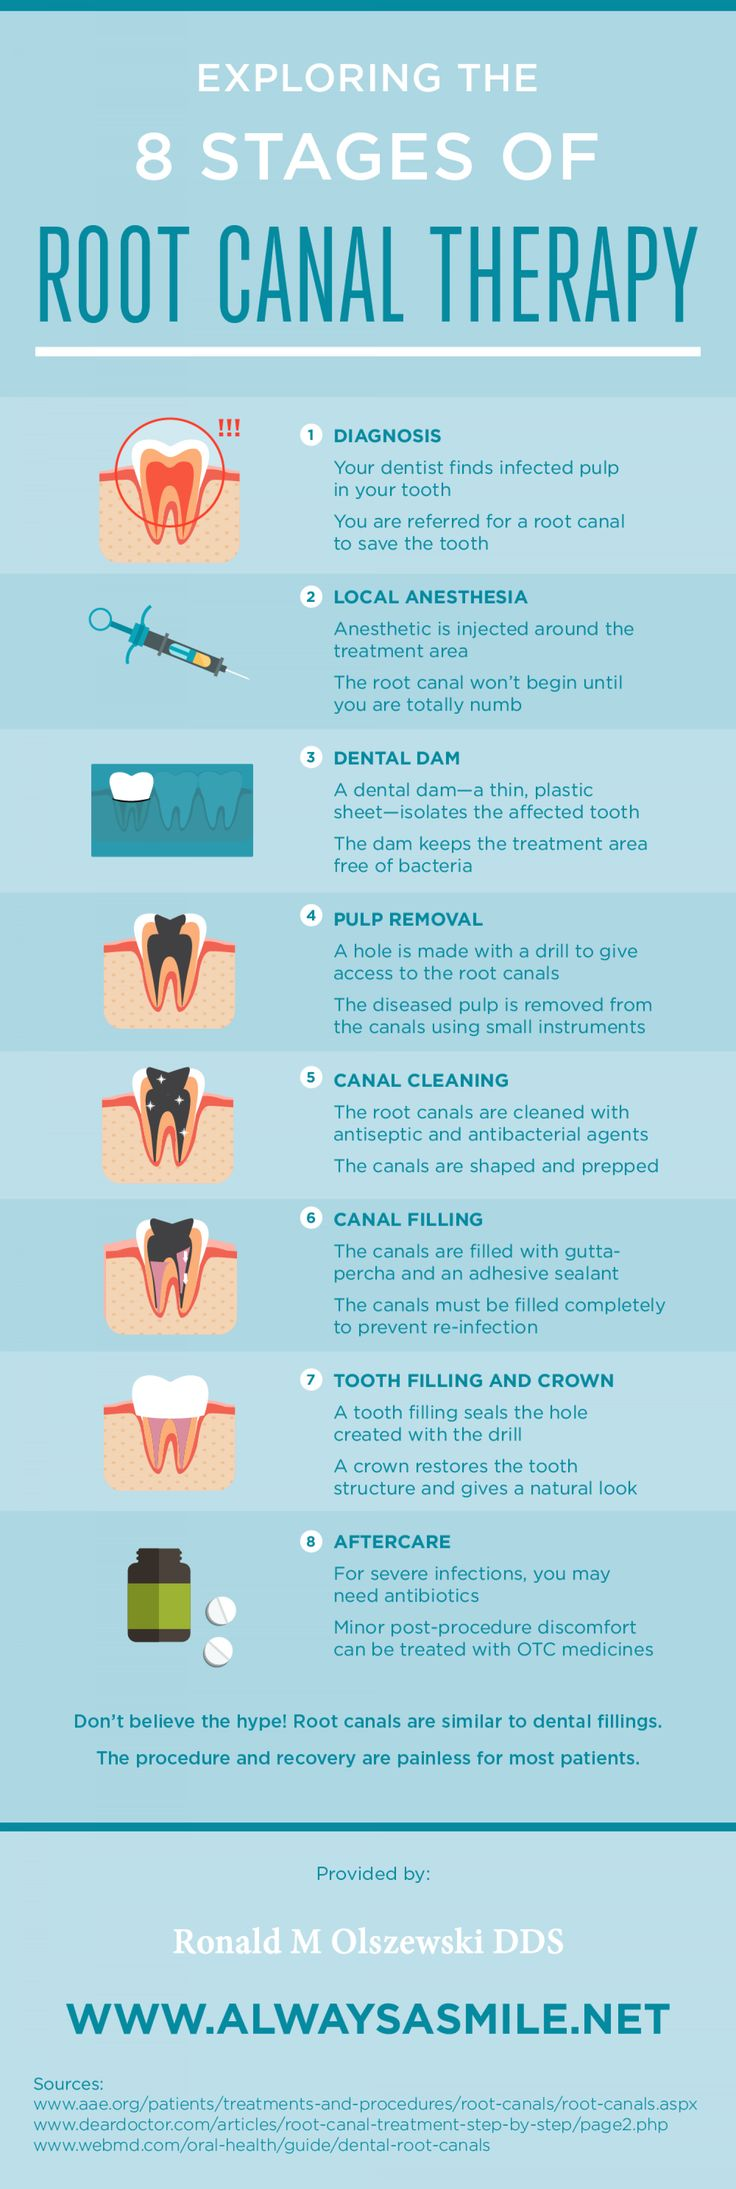 Exploring the 8 Stages of Root Canal Therapy